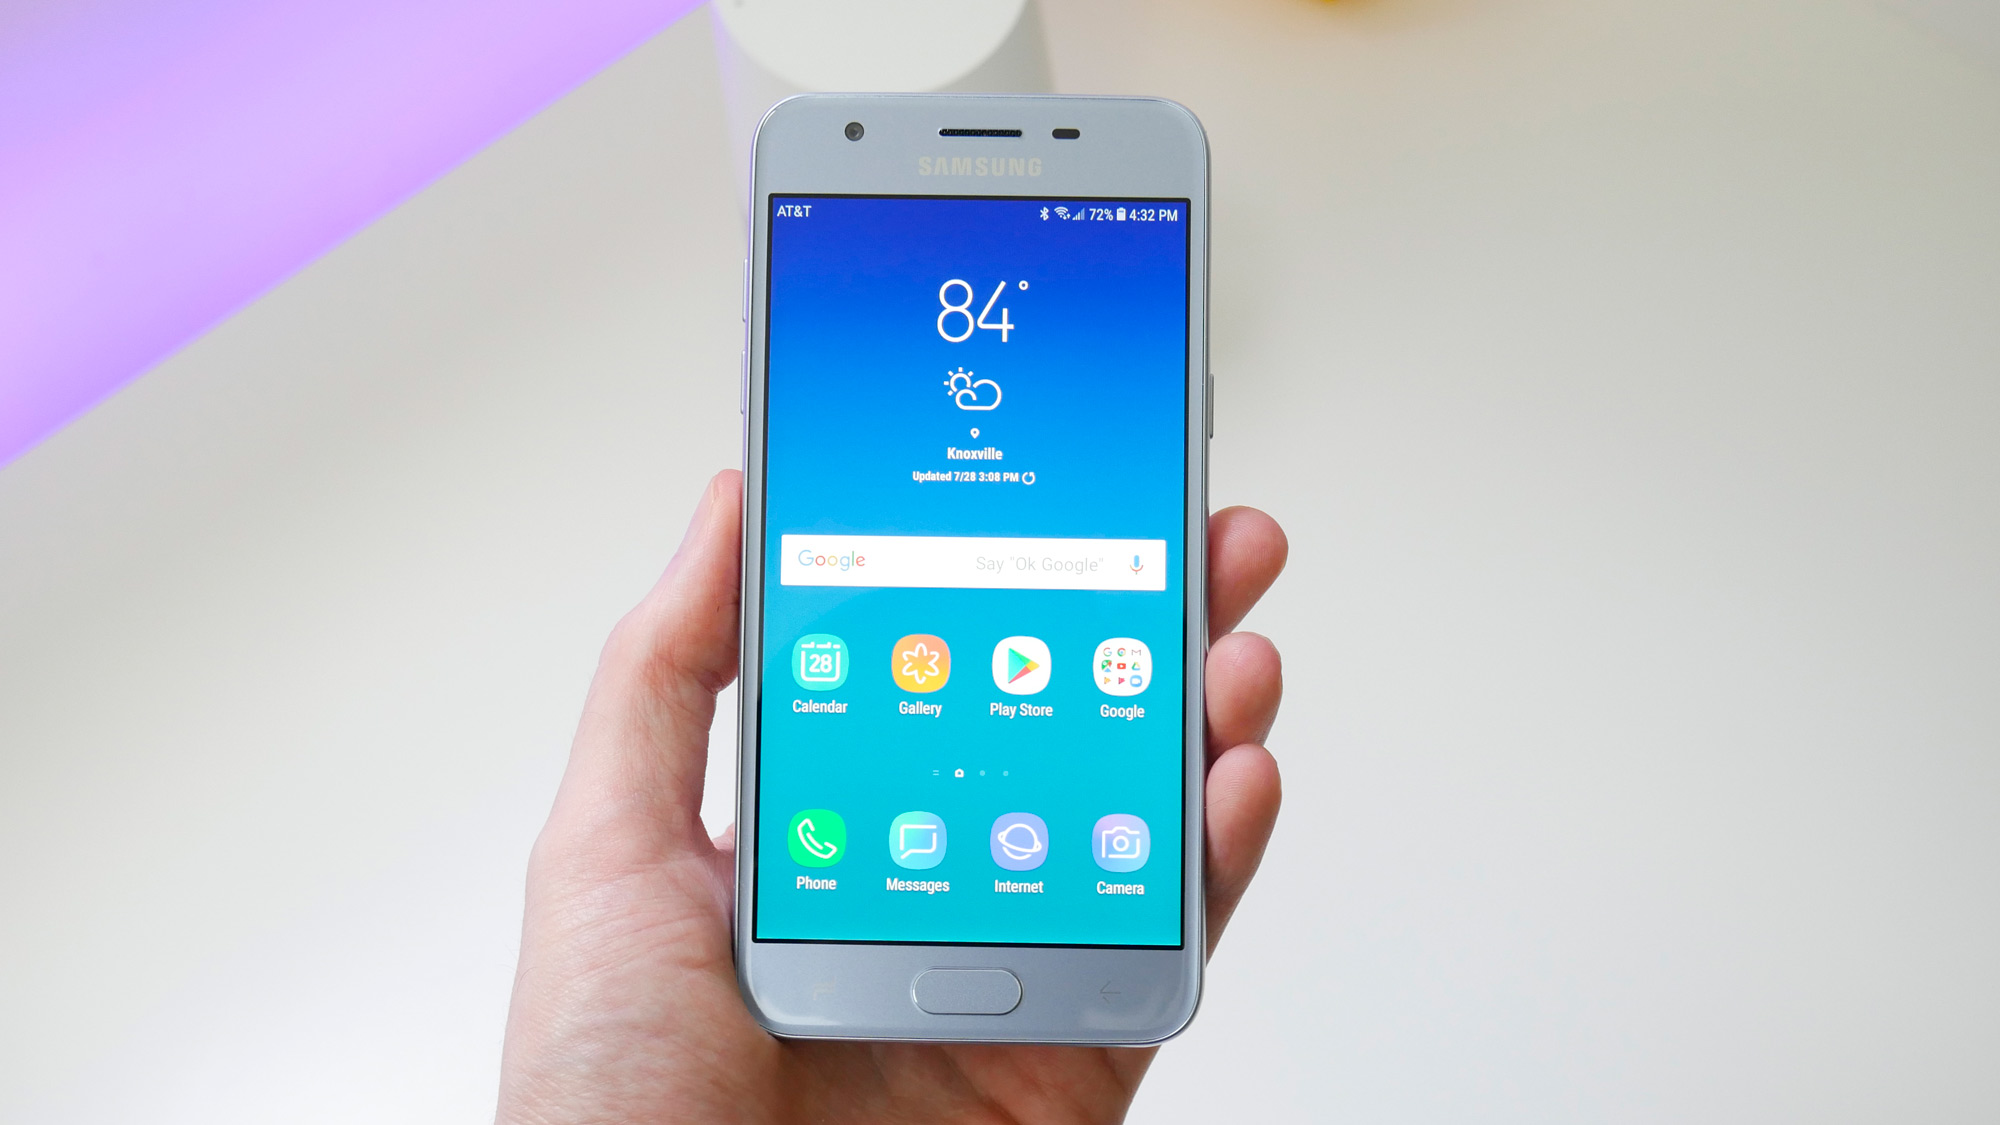 Samsung J3 2018 and Galaxy Express Prime 3 review